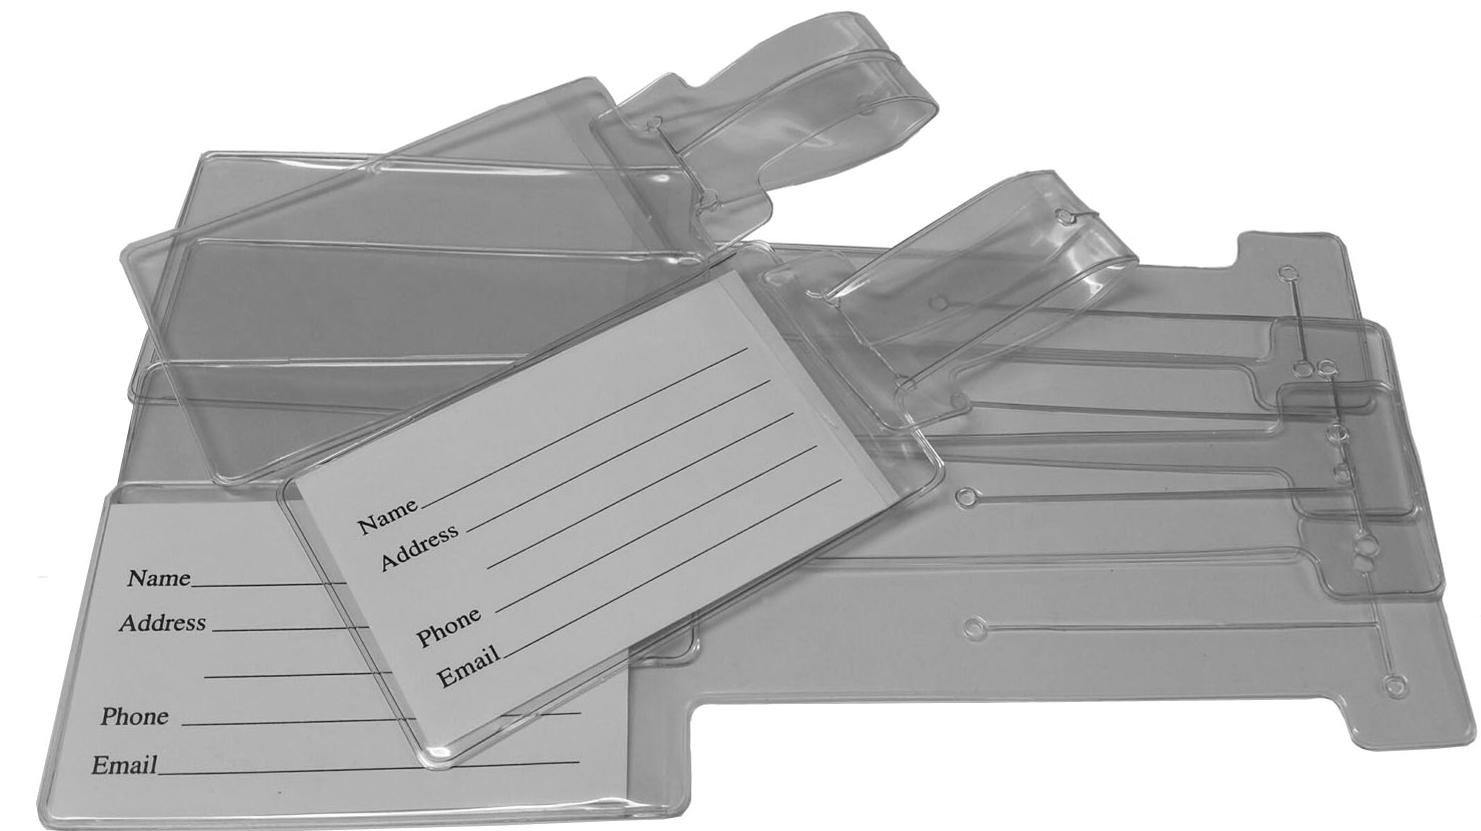 Small Clear Vinyl Self-Looping LUGGAGE TAGS 9 x 2 1/2 Set of 25 Business Card